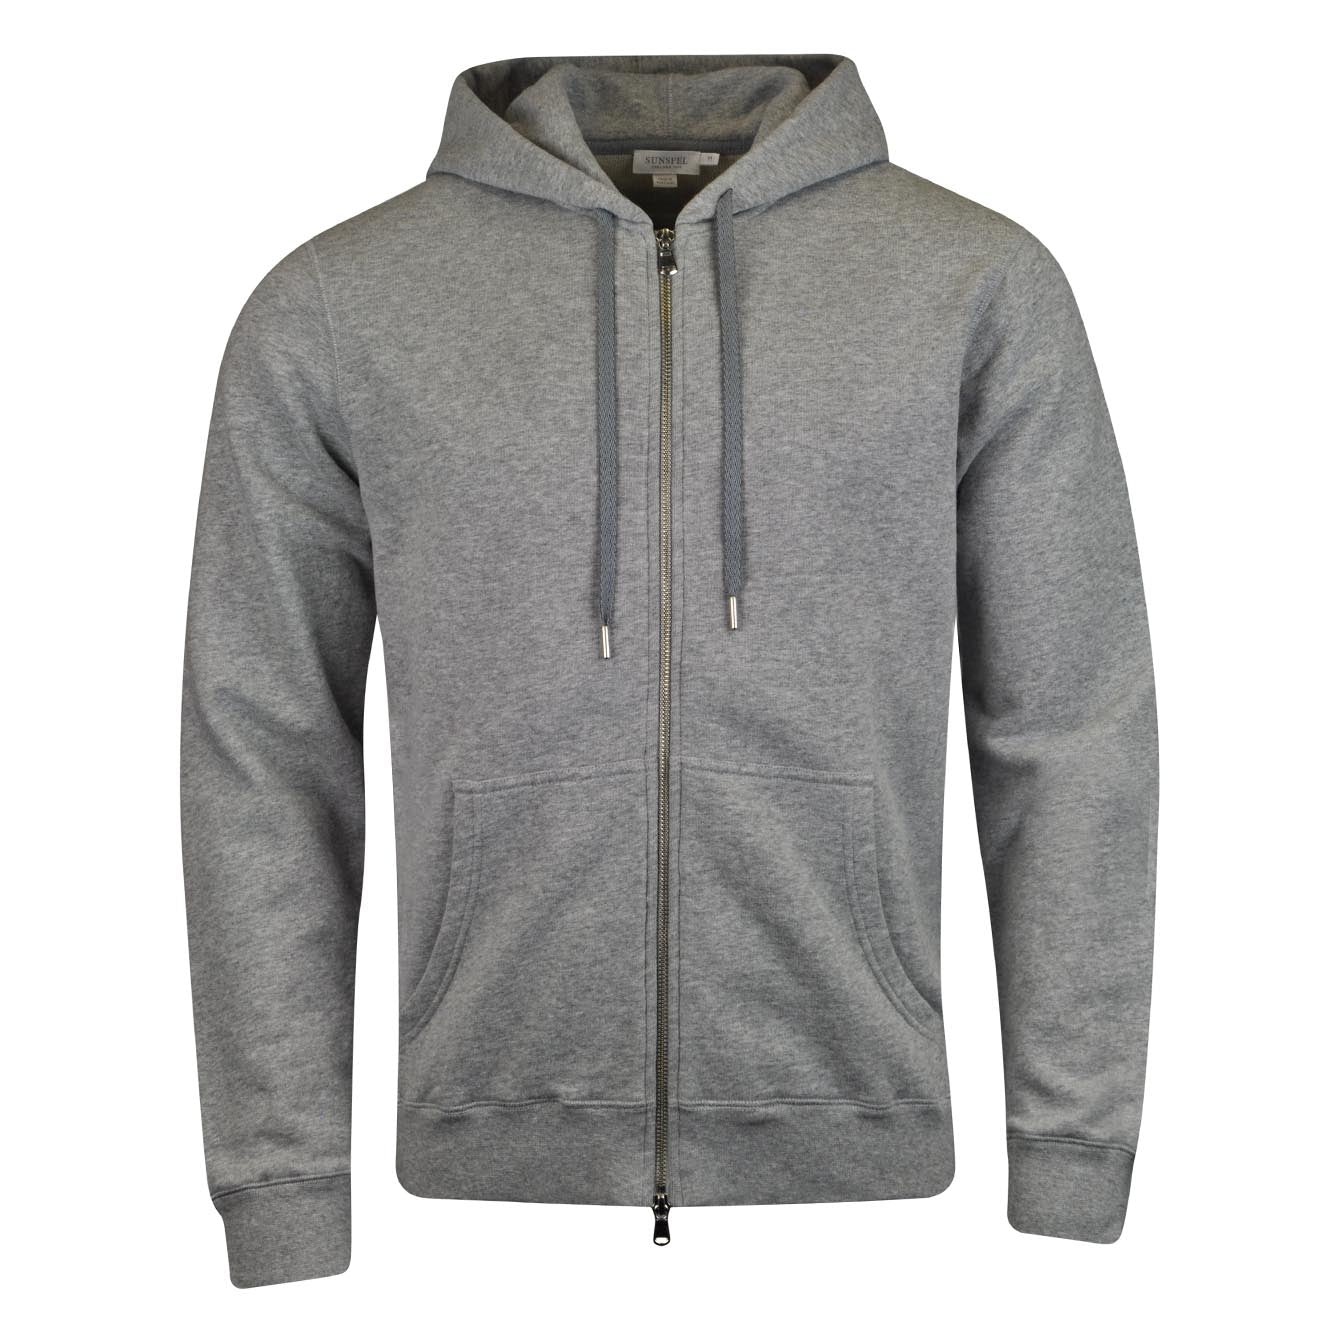 MEN'S COTTON LOOPBACK ZIP HOODY IN GREY MELANGE 4